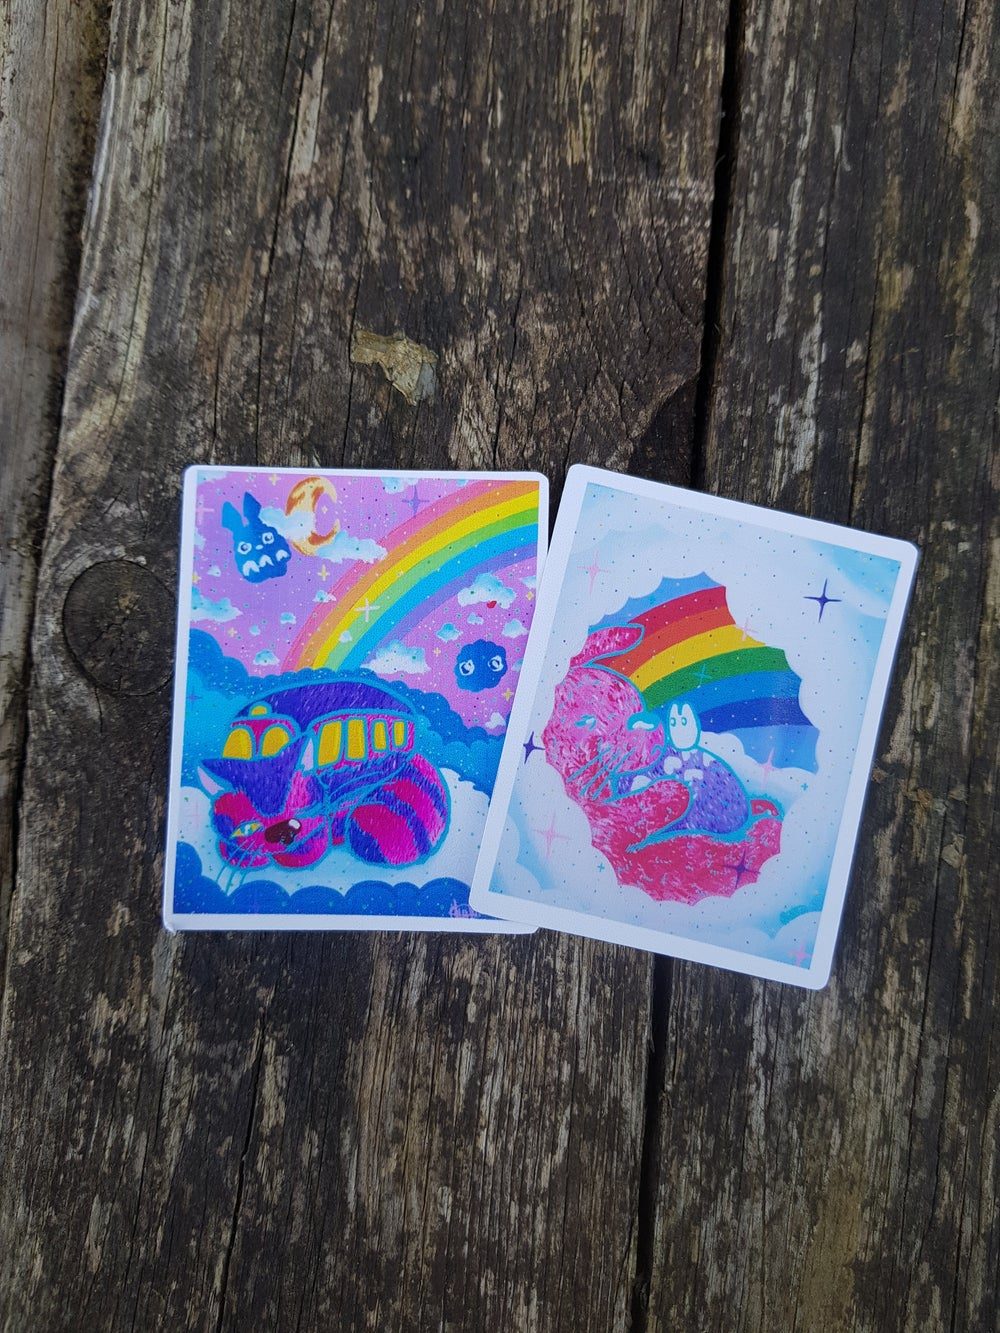 Image of Ghibli glossy holographic stickers